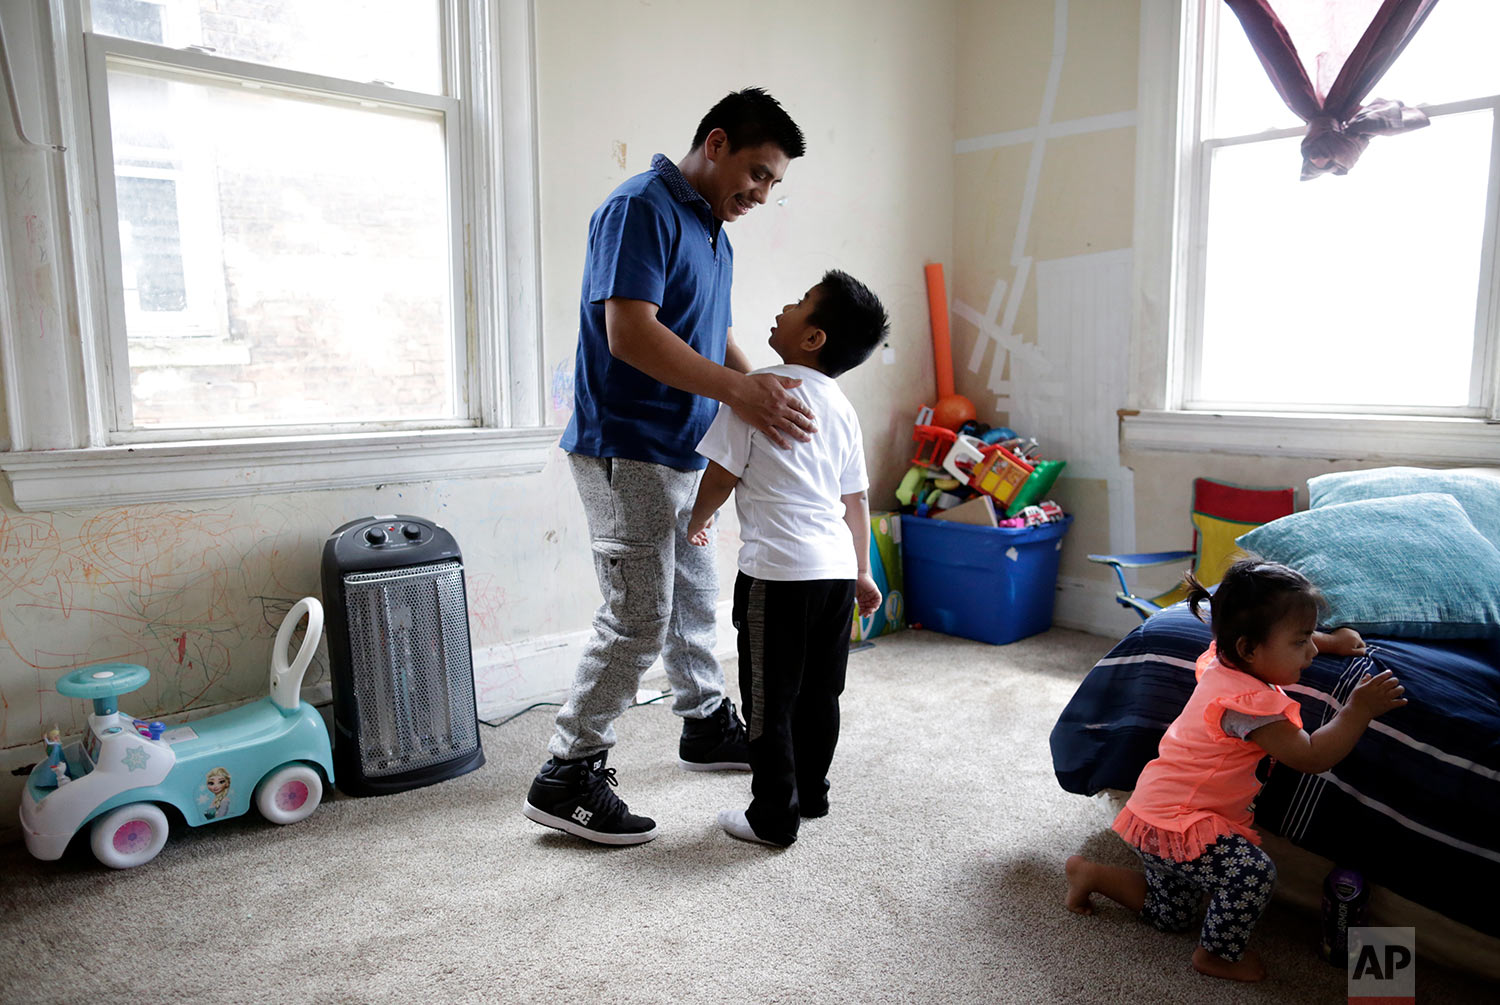 Edgar Perez Ramirez stands with his 4-year-old son, Franco, in their home. (AP Photo/Gregory Bull)